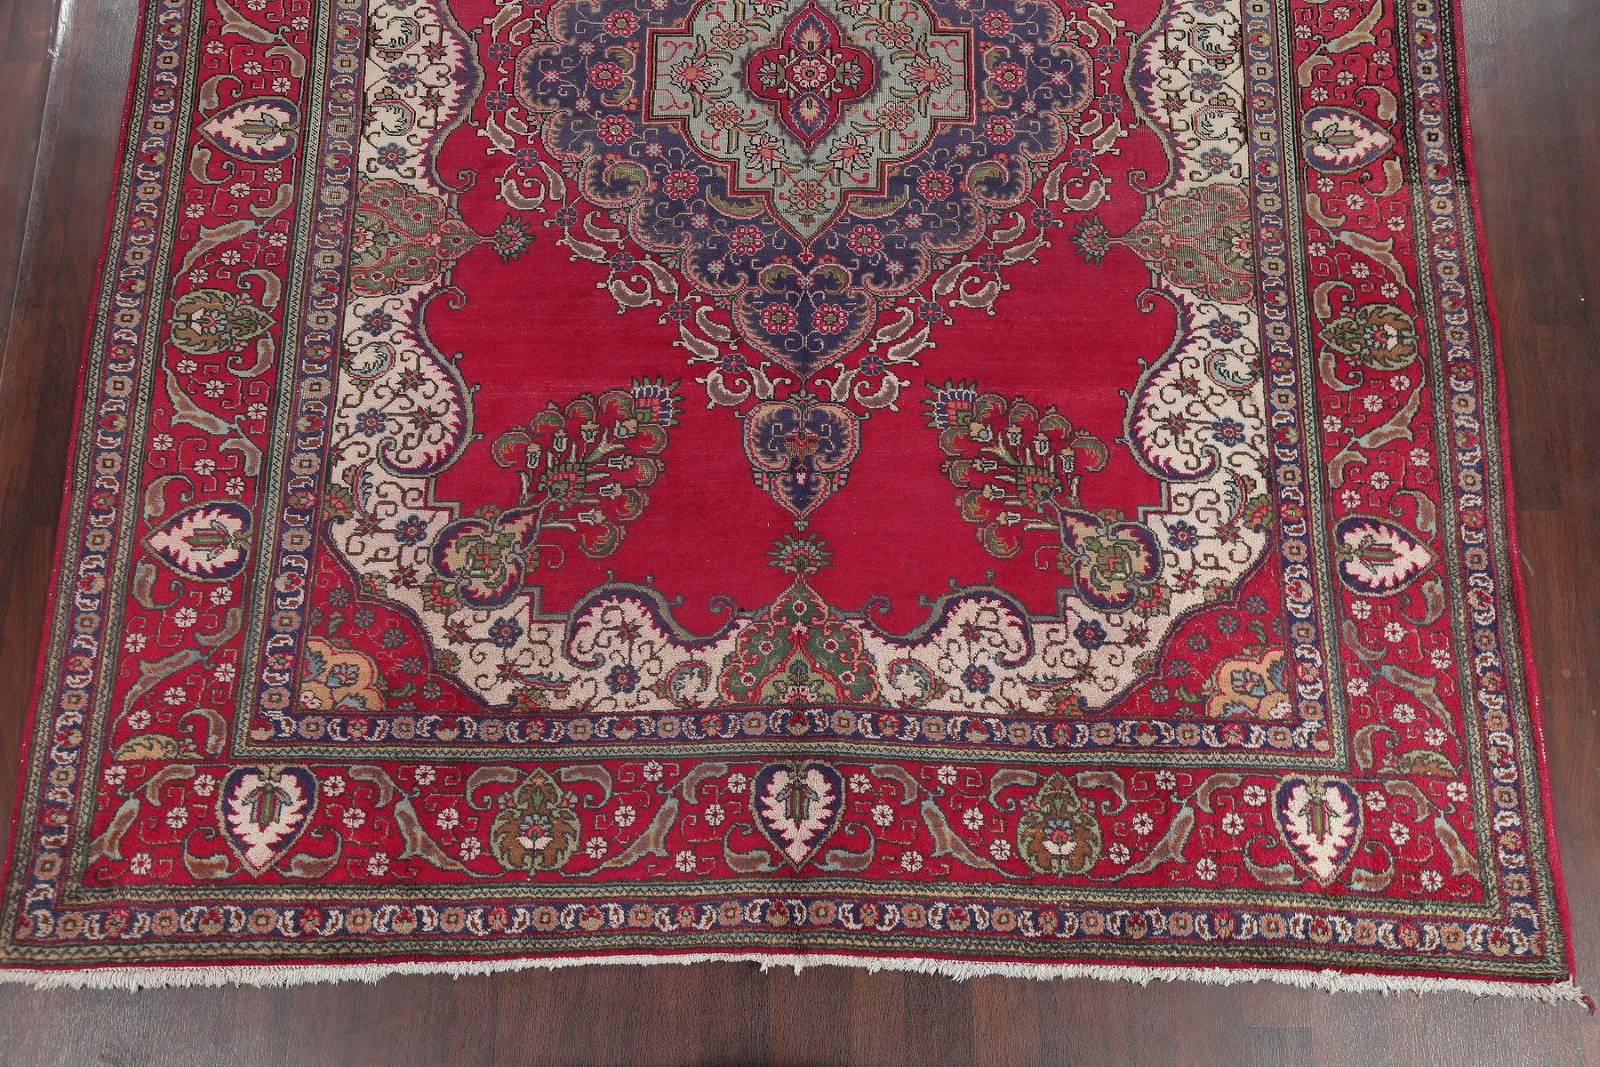 Hand-Knotted Red Geometric Tabriz Persian Area Rug Wool 10x13